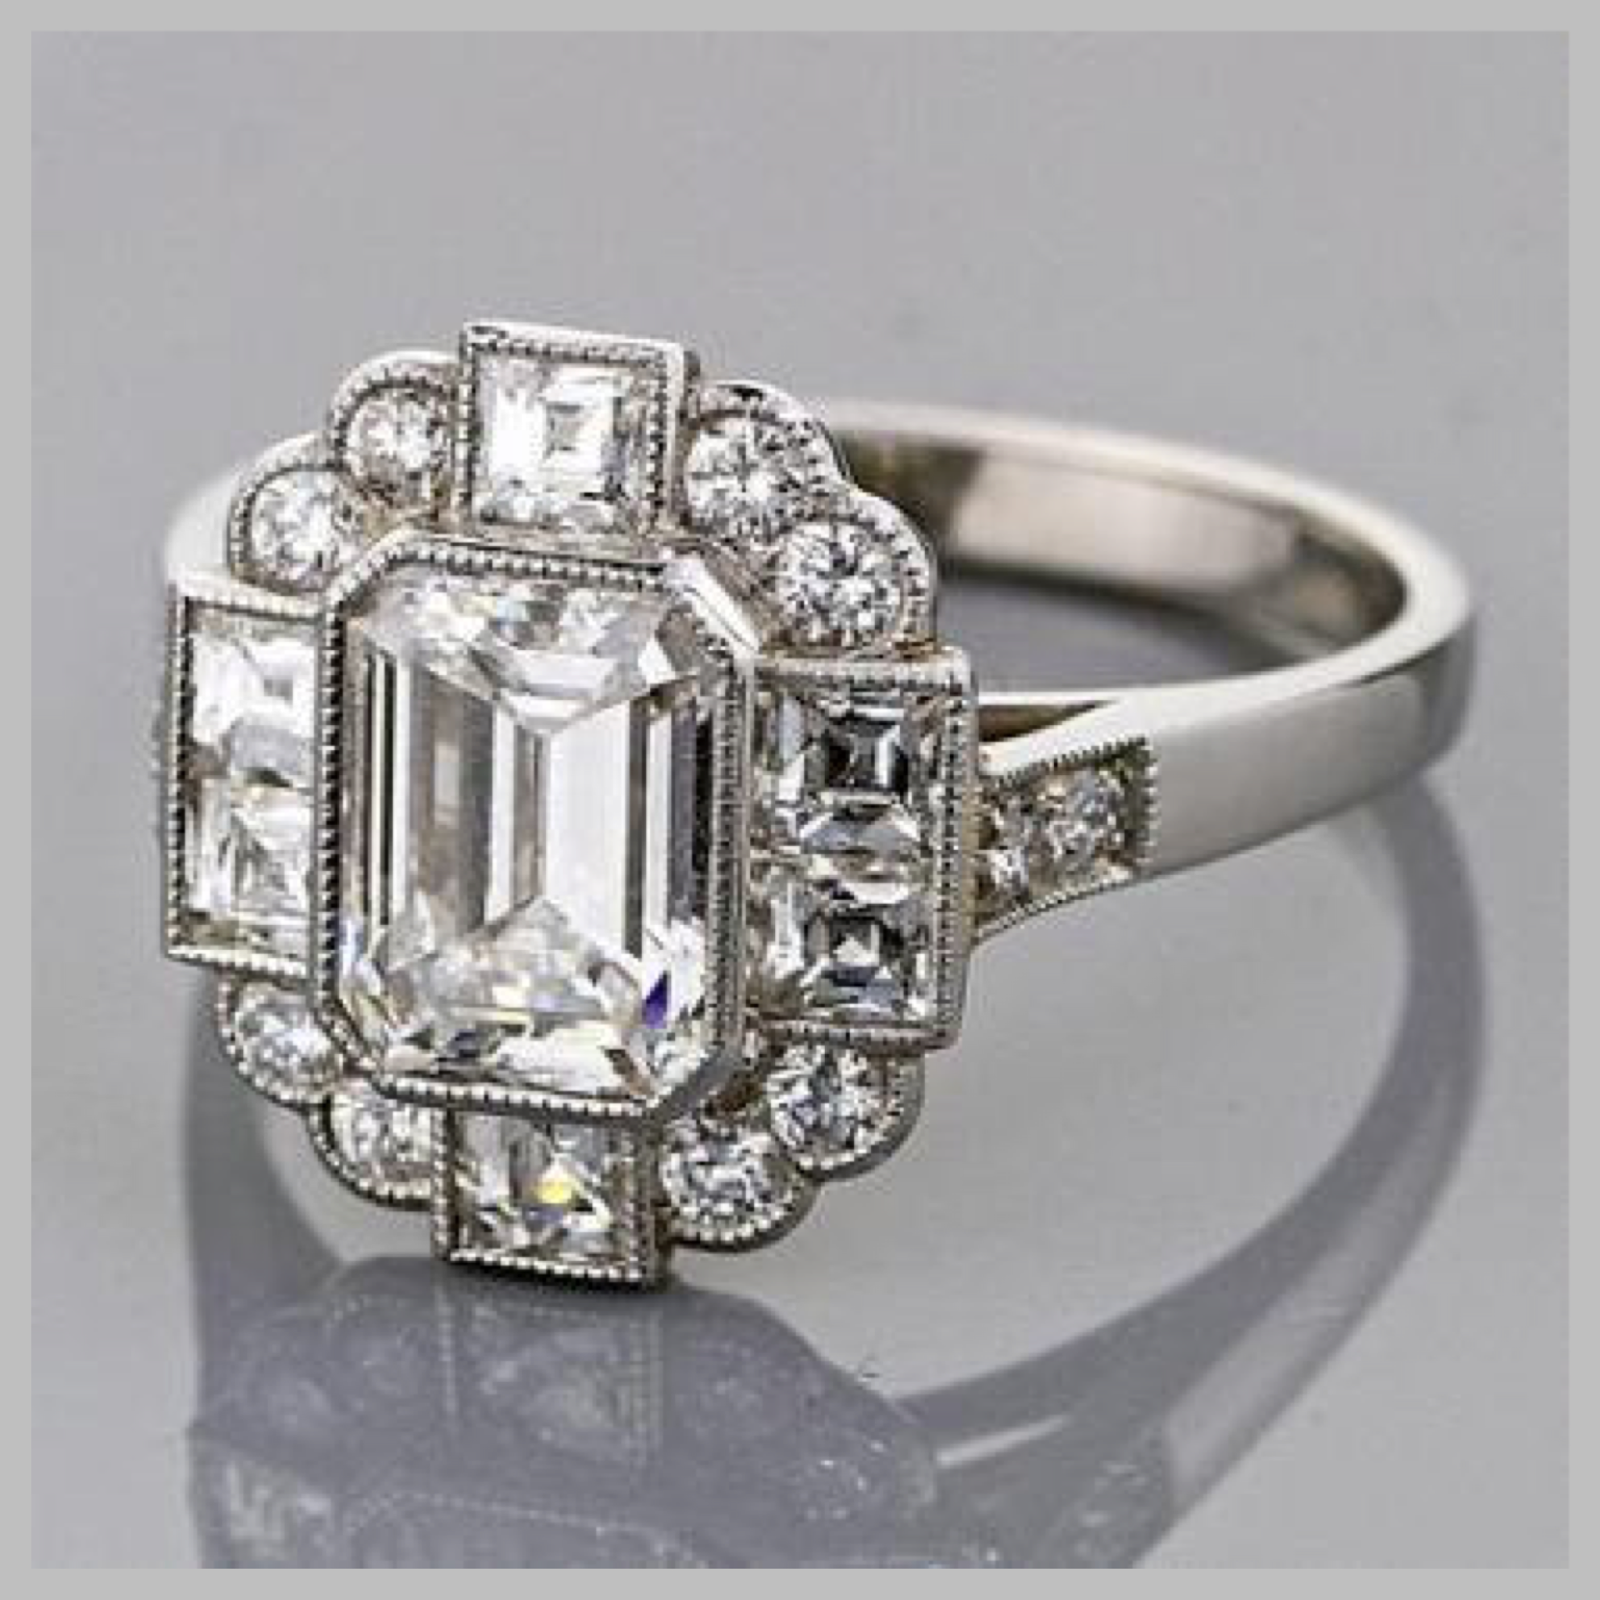 wixon category weddings engagement patterson the jewelers beautifully engagements rectangular and s diamond as oval showcases rings cut large inclusions this mark make archives table clarity its